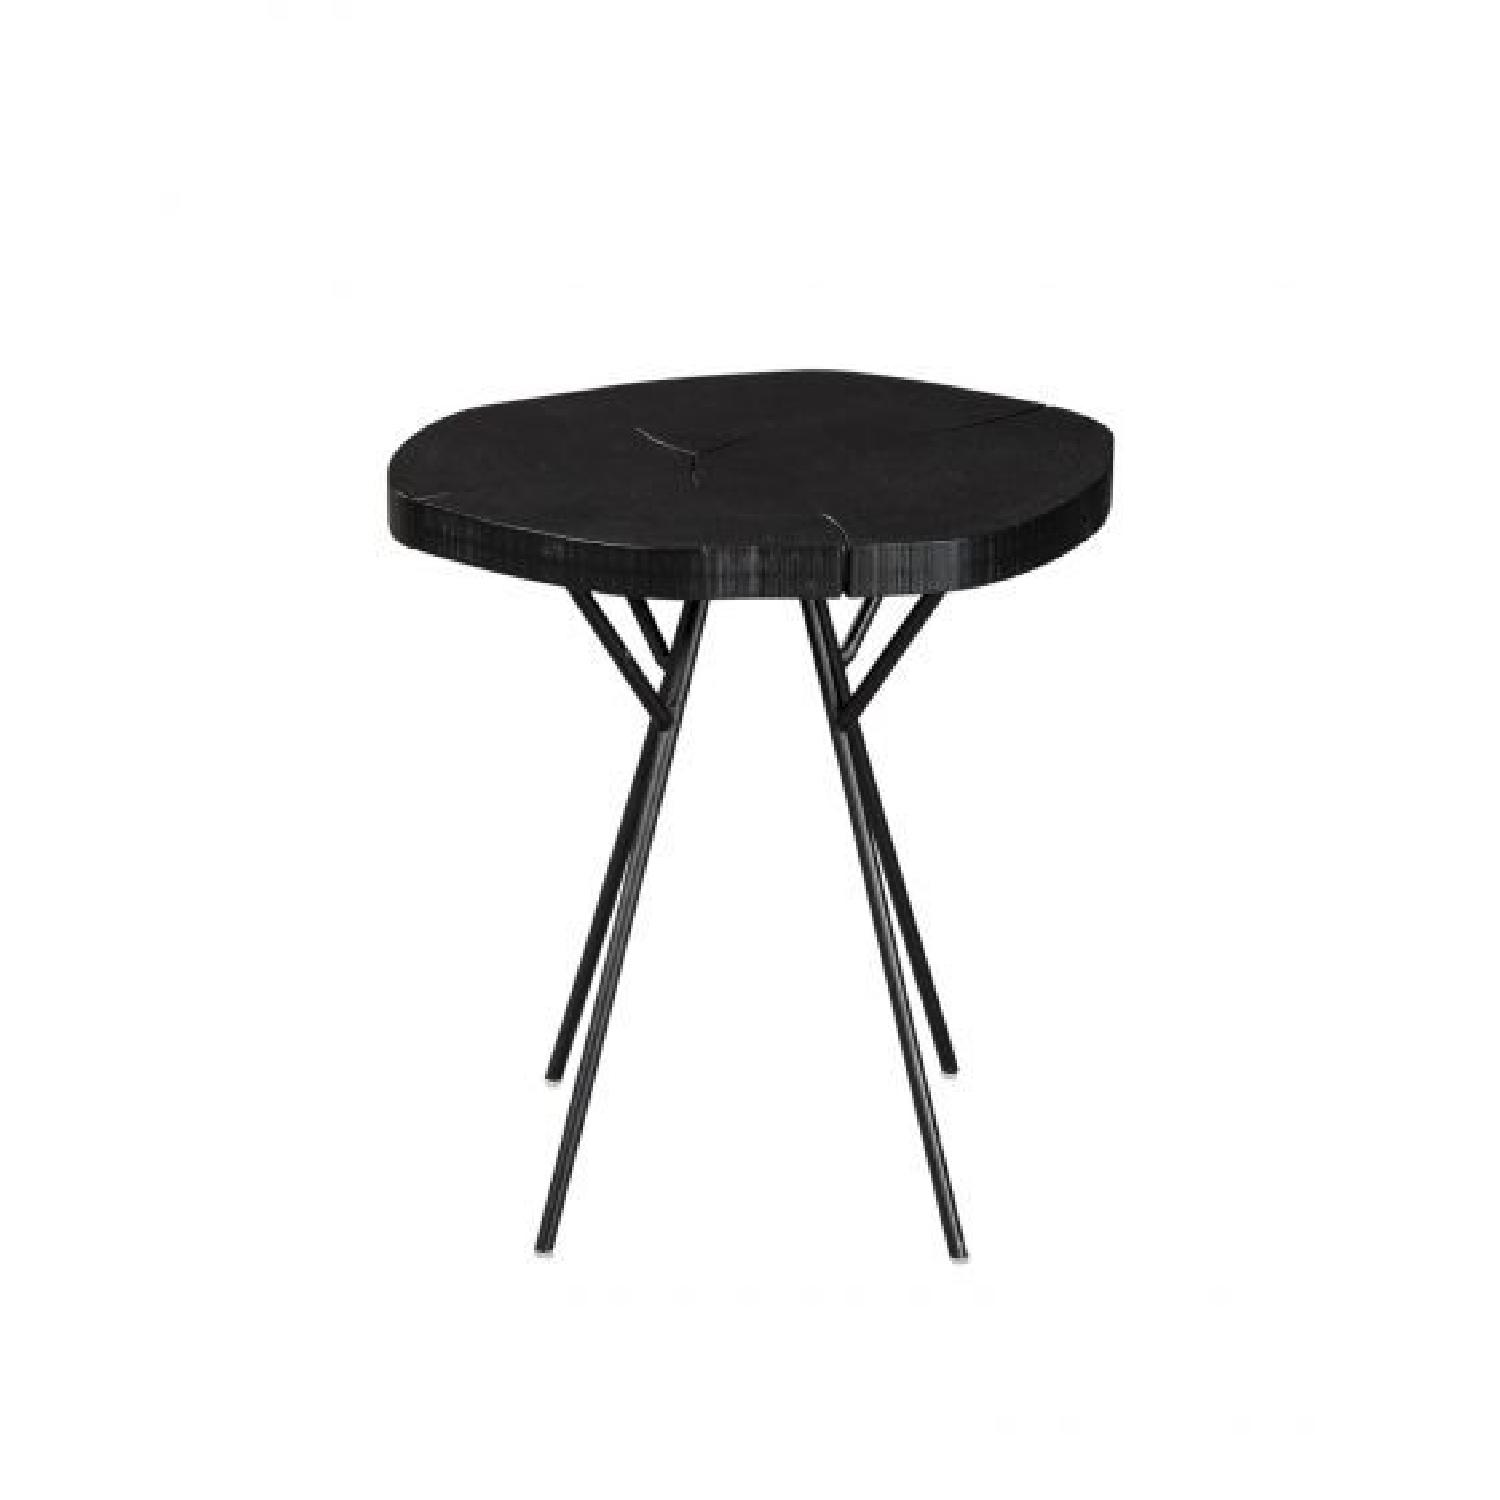 Rich Black Finish Accent Table w/ Metal Legs